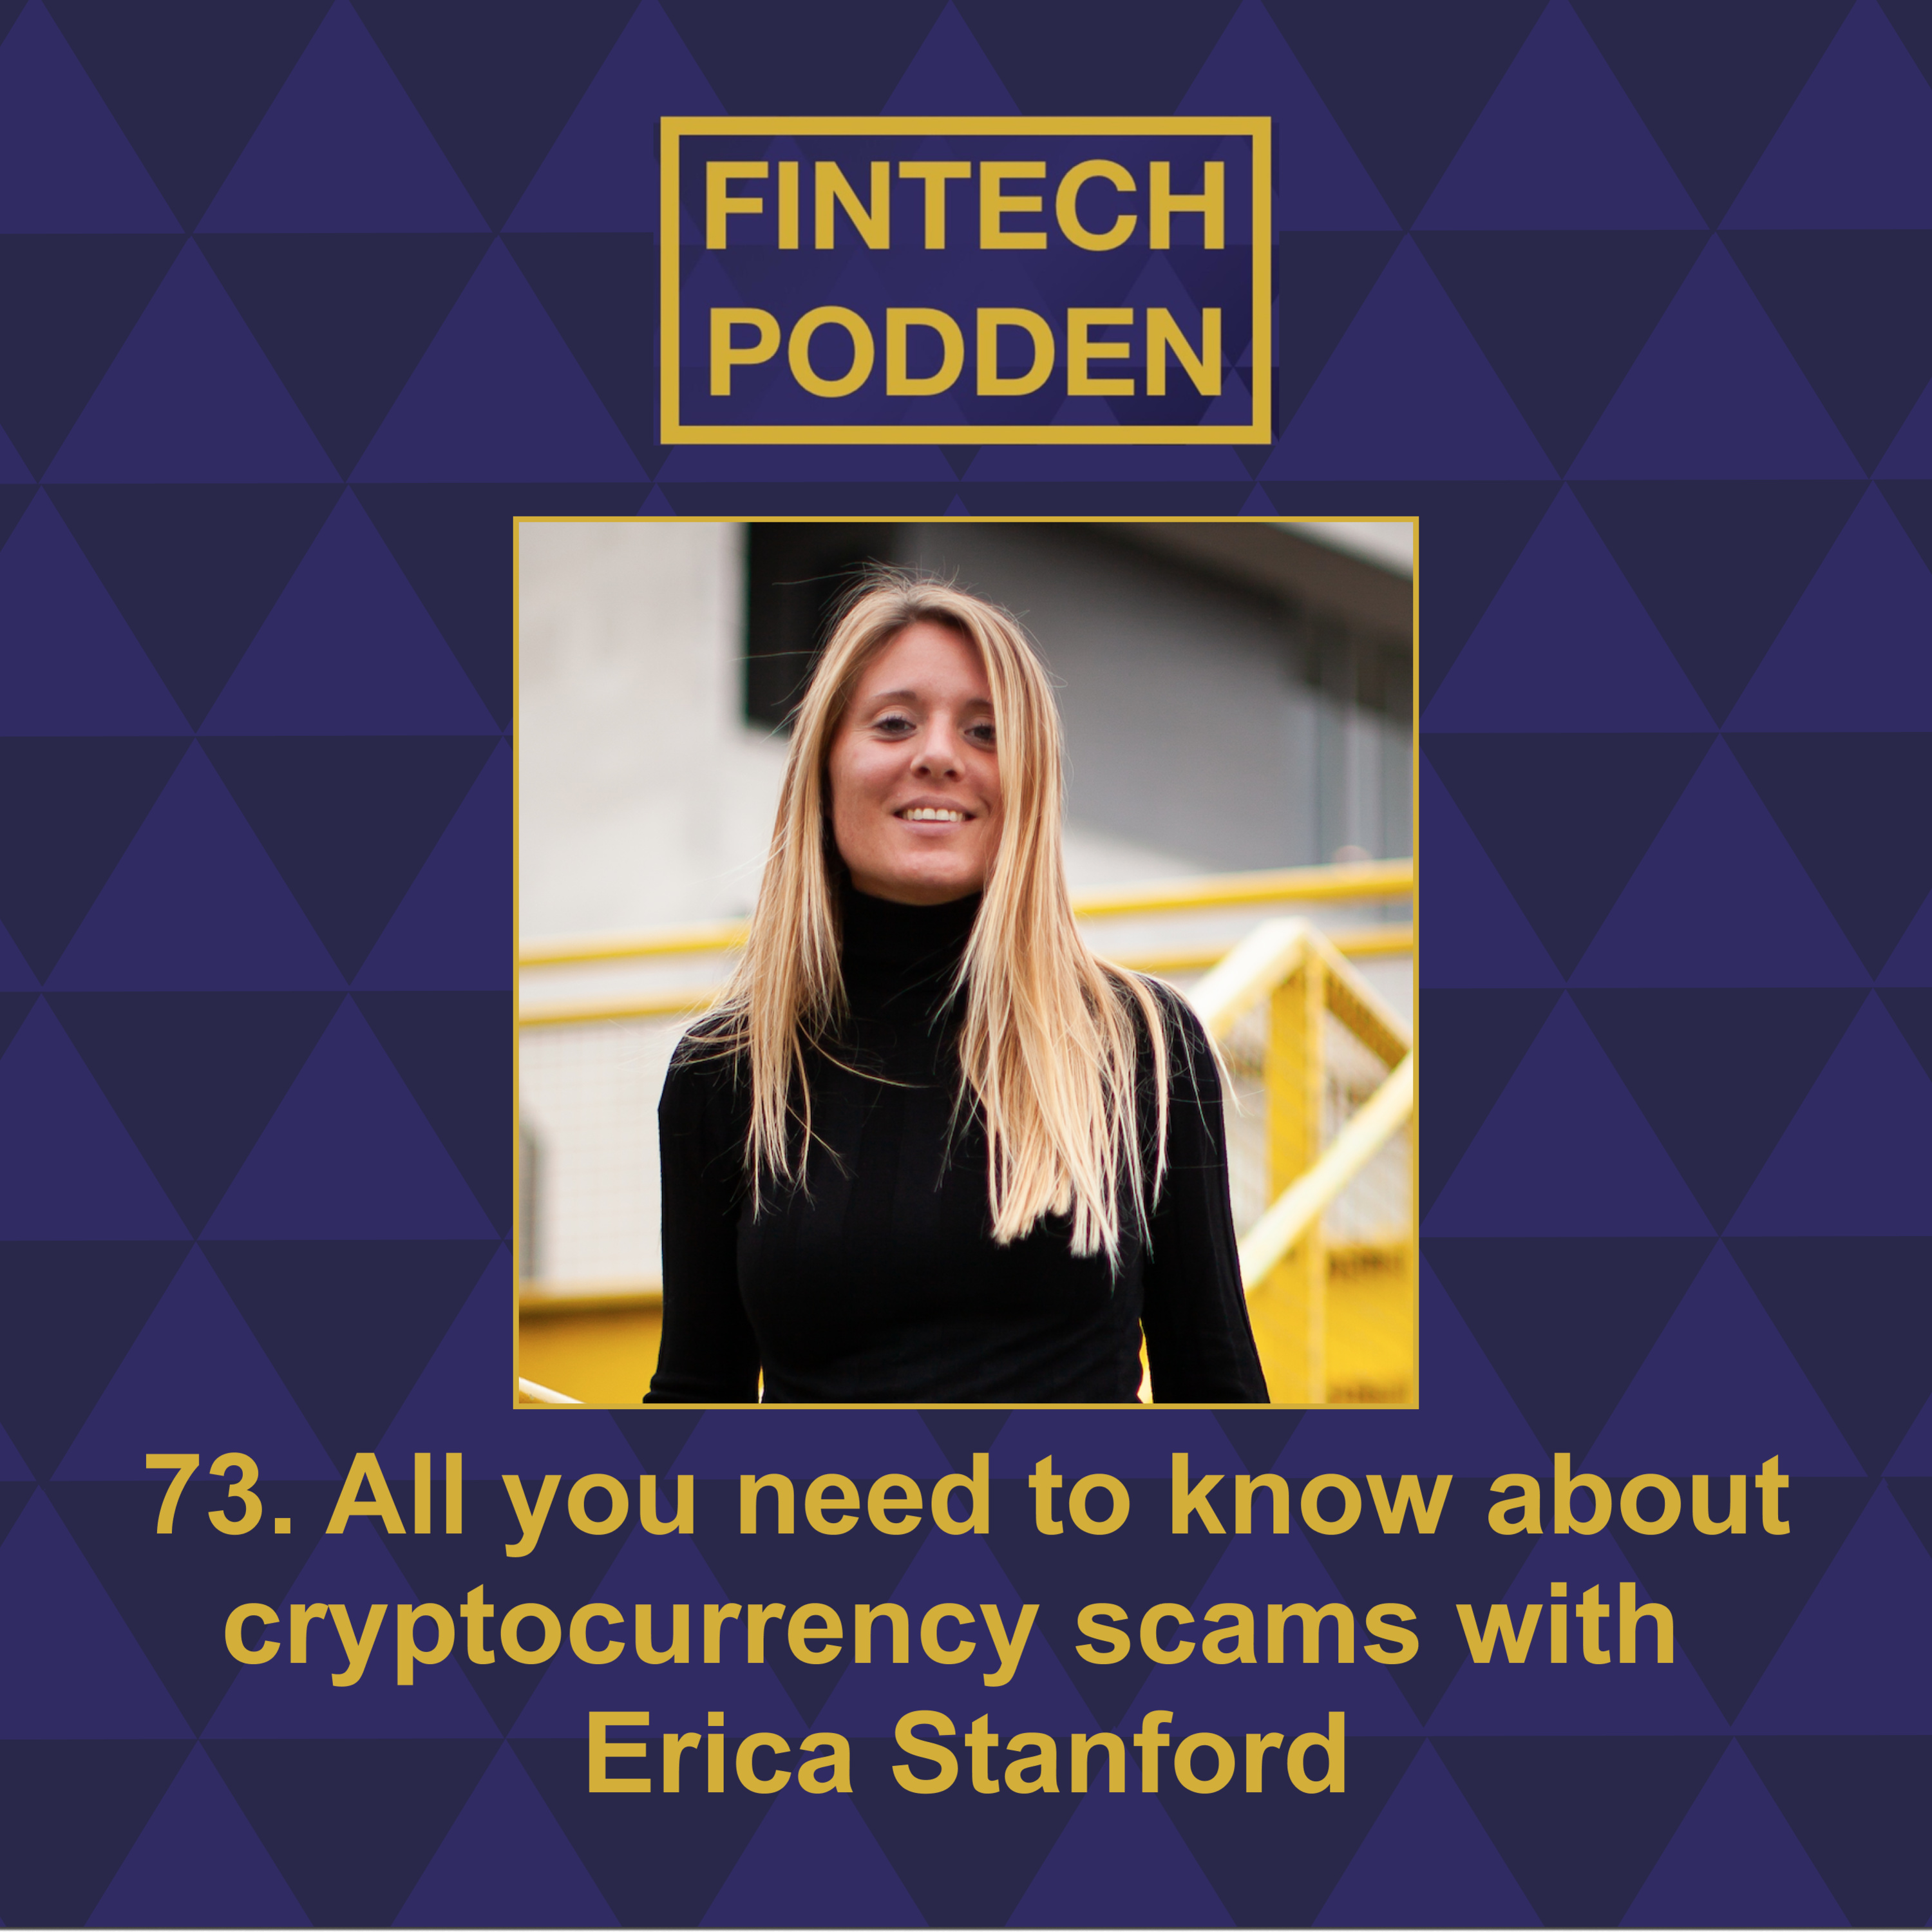 73. All you need to know about cryptocurrency scams with Erica Stanford